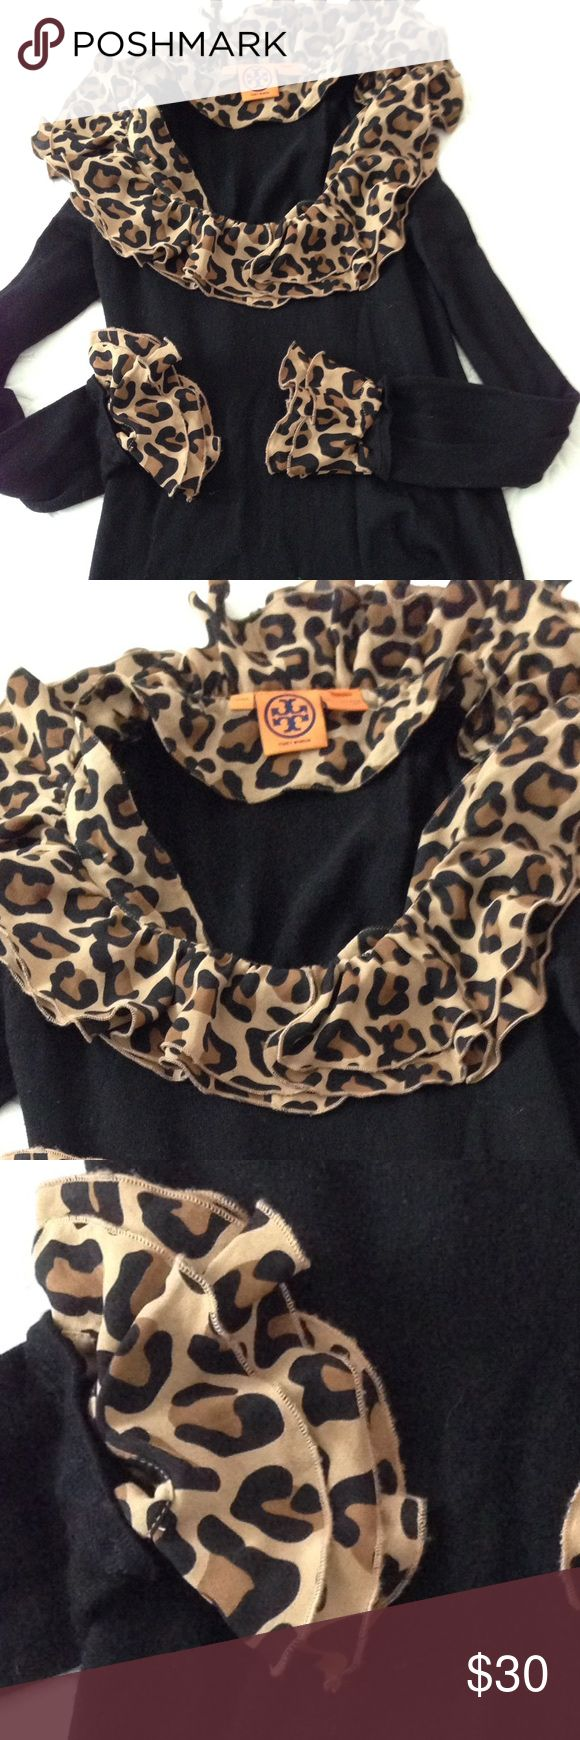 It's perfect ! Size m Sweater Tory burch Tory Burch Sweaters Crew & Scoop Necks